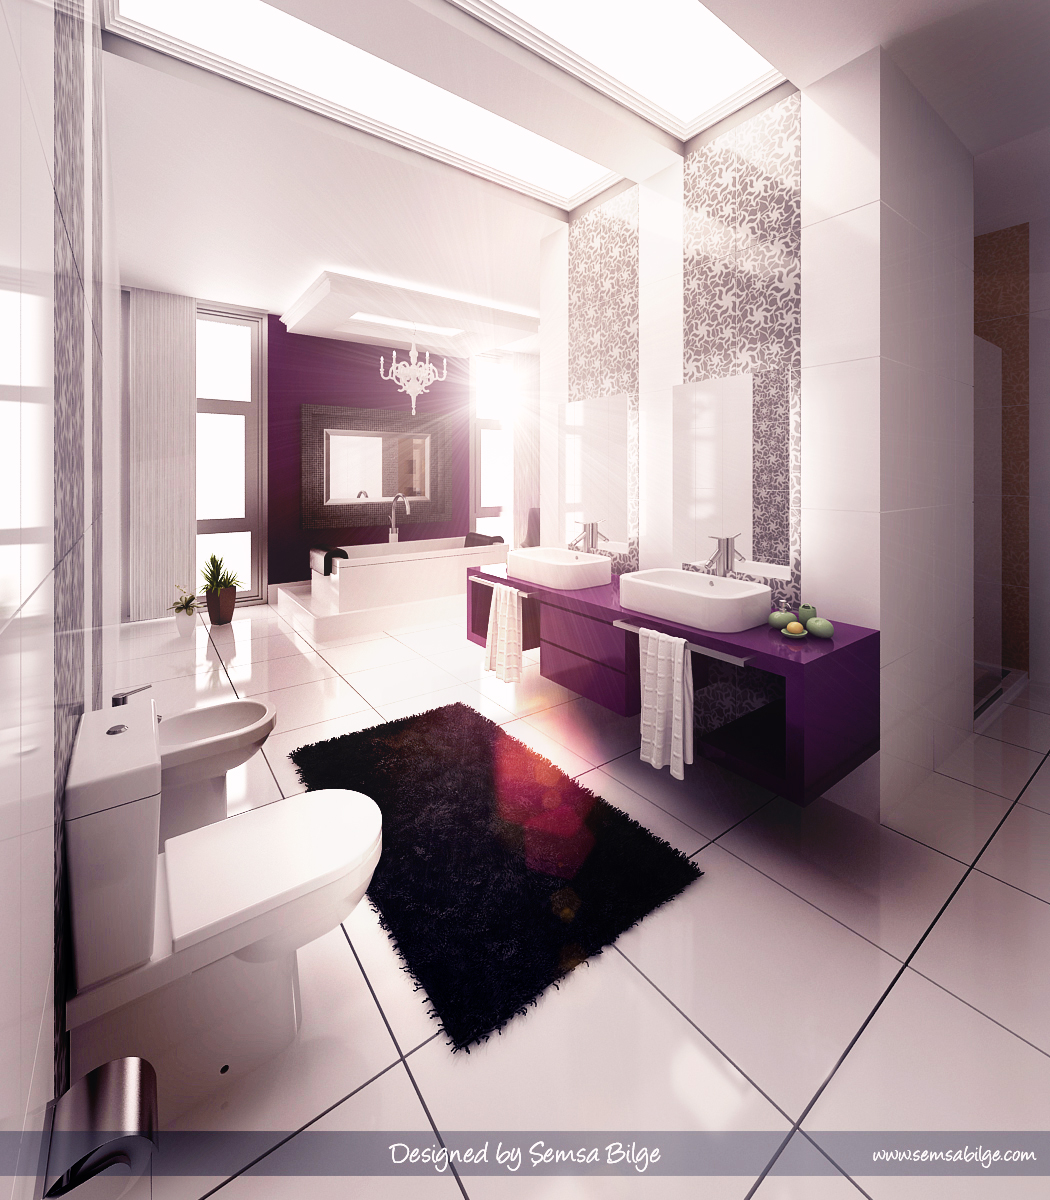 Beautiful bathroom designs ideas interior design for Pictures of beautiful bathroom designs